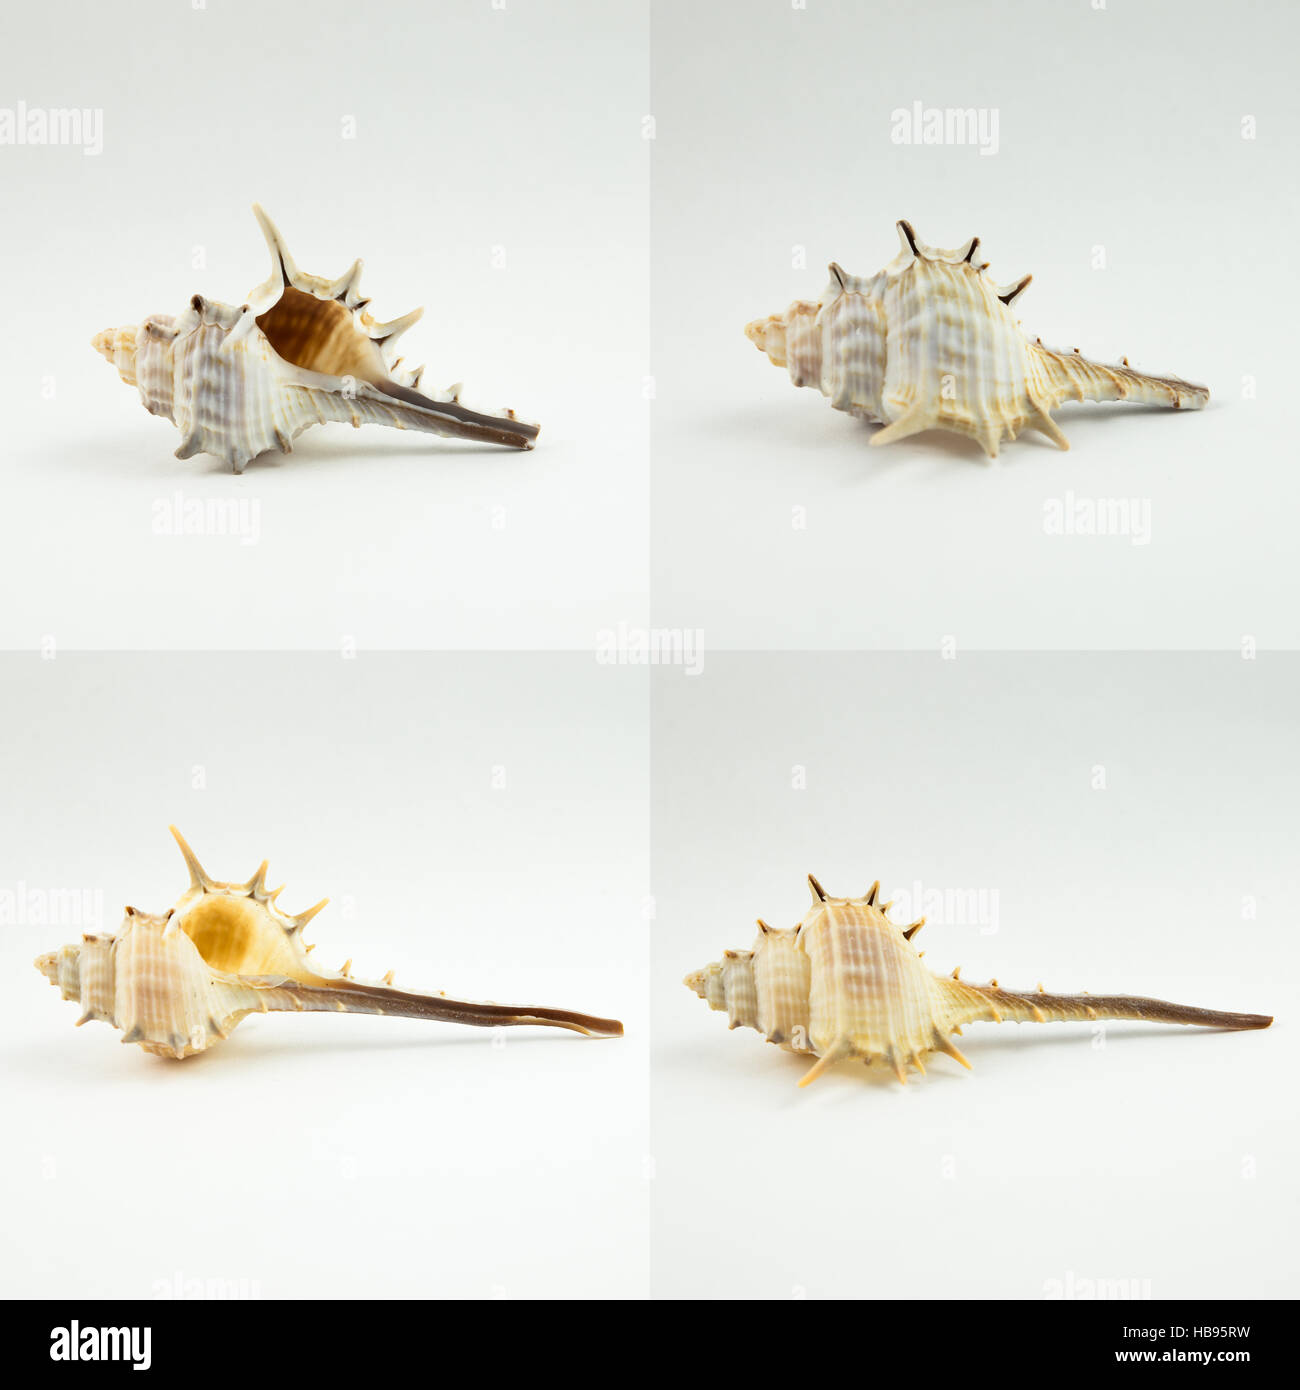 Shells with spines - Stock Image